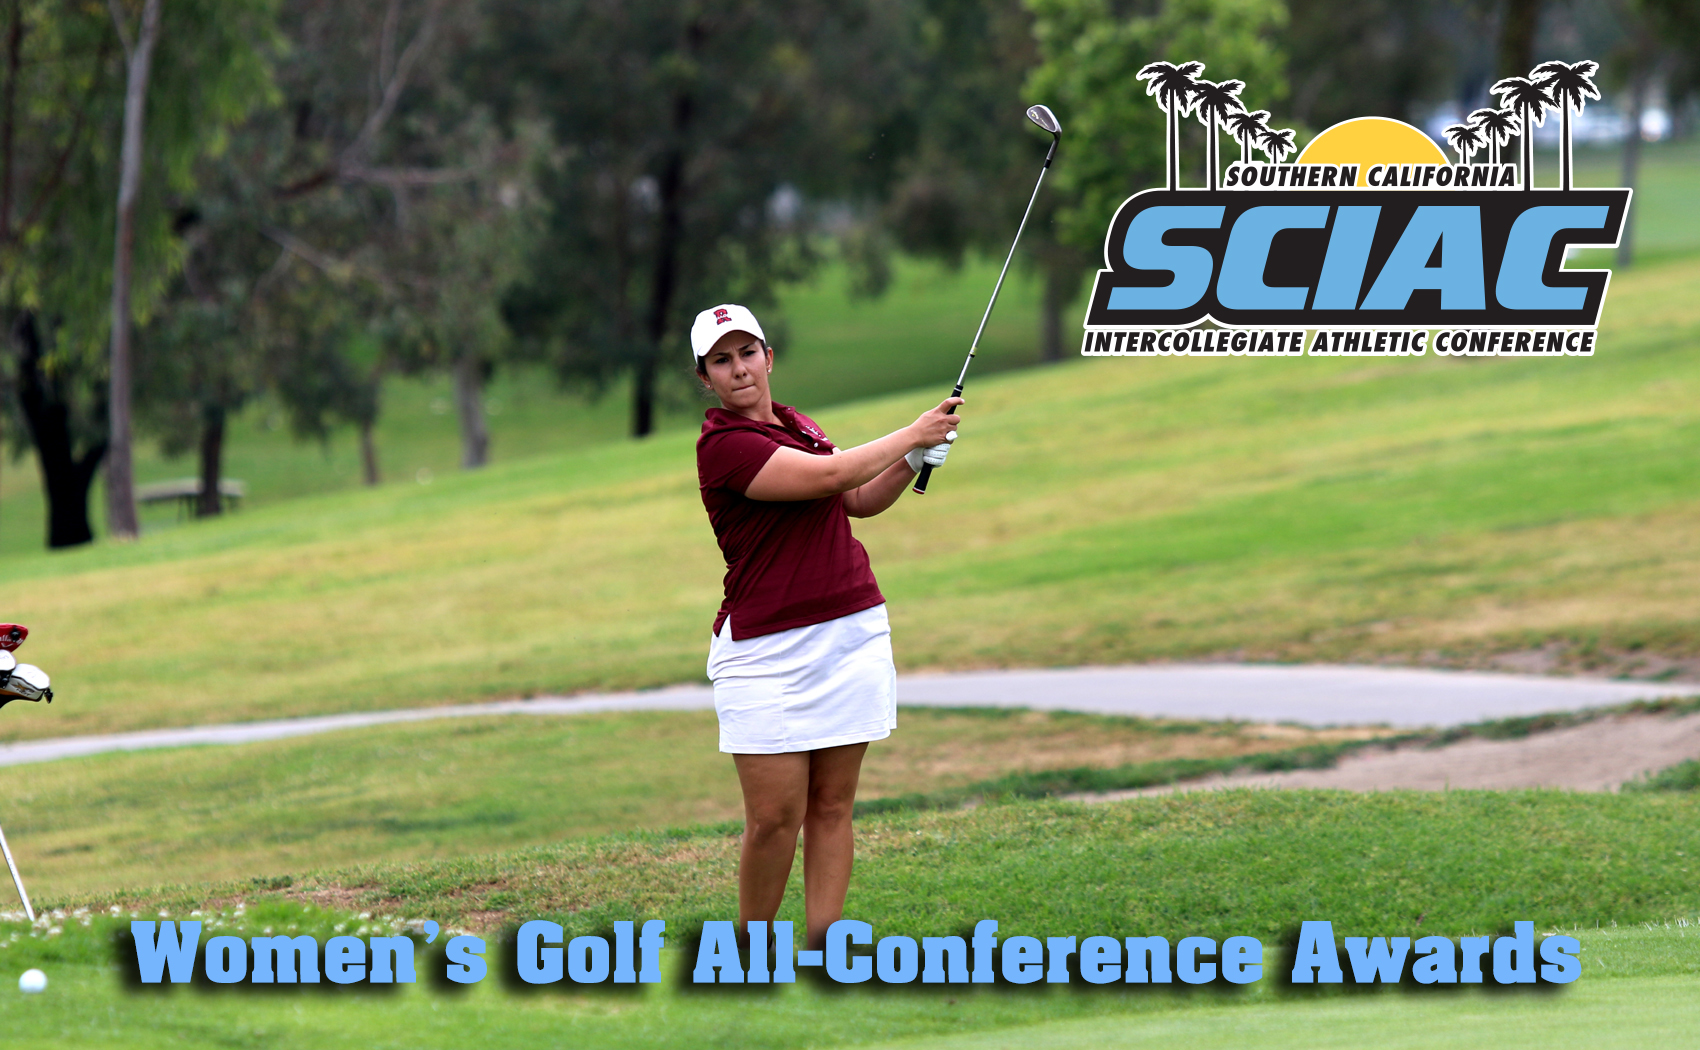 2017 SCIAC Women's Golf All-Conference